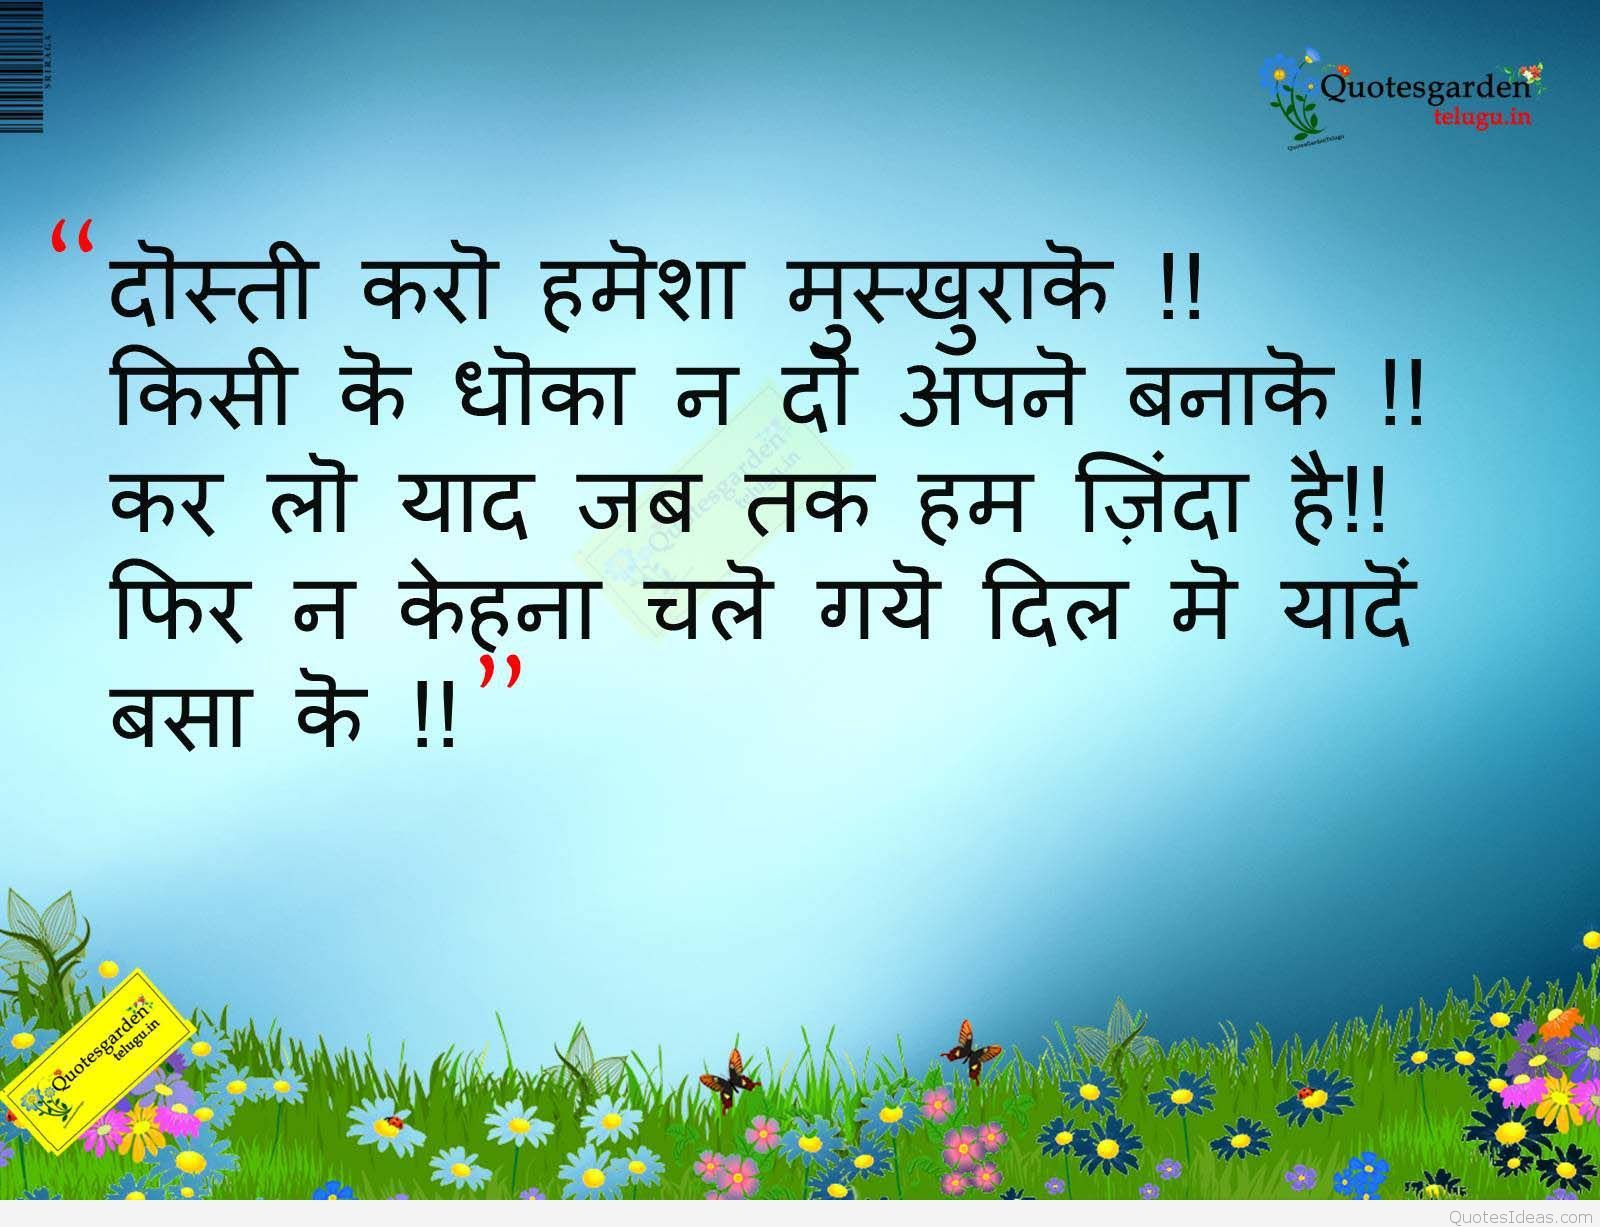 Top 50 Hindi Love Quotes, Sayings Images Wallpapers Hd